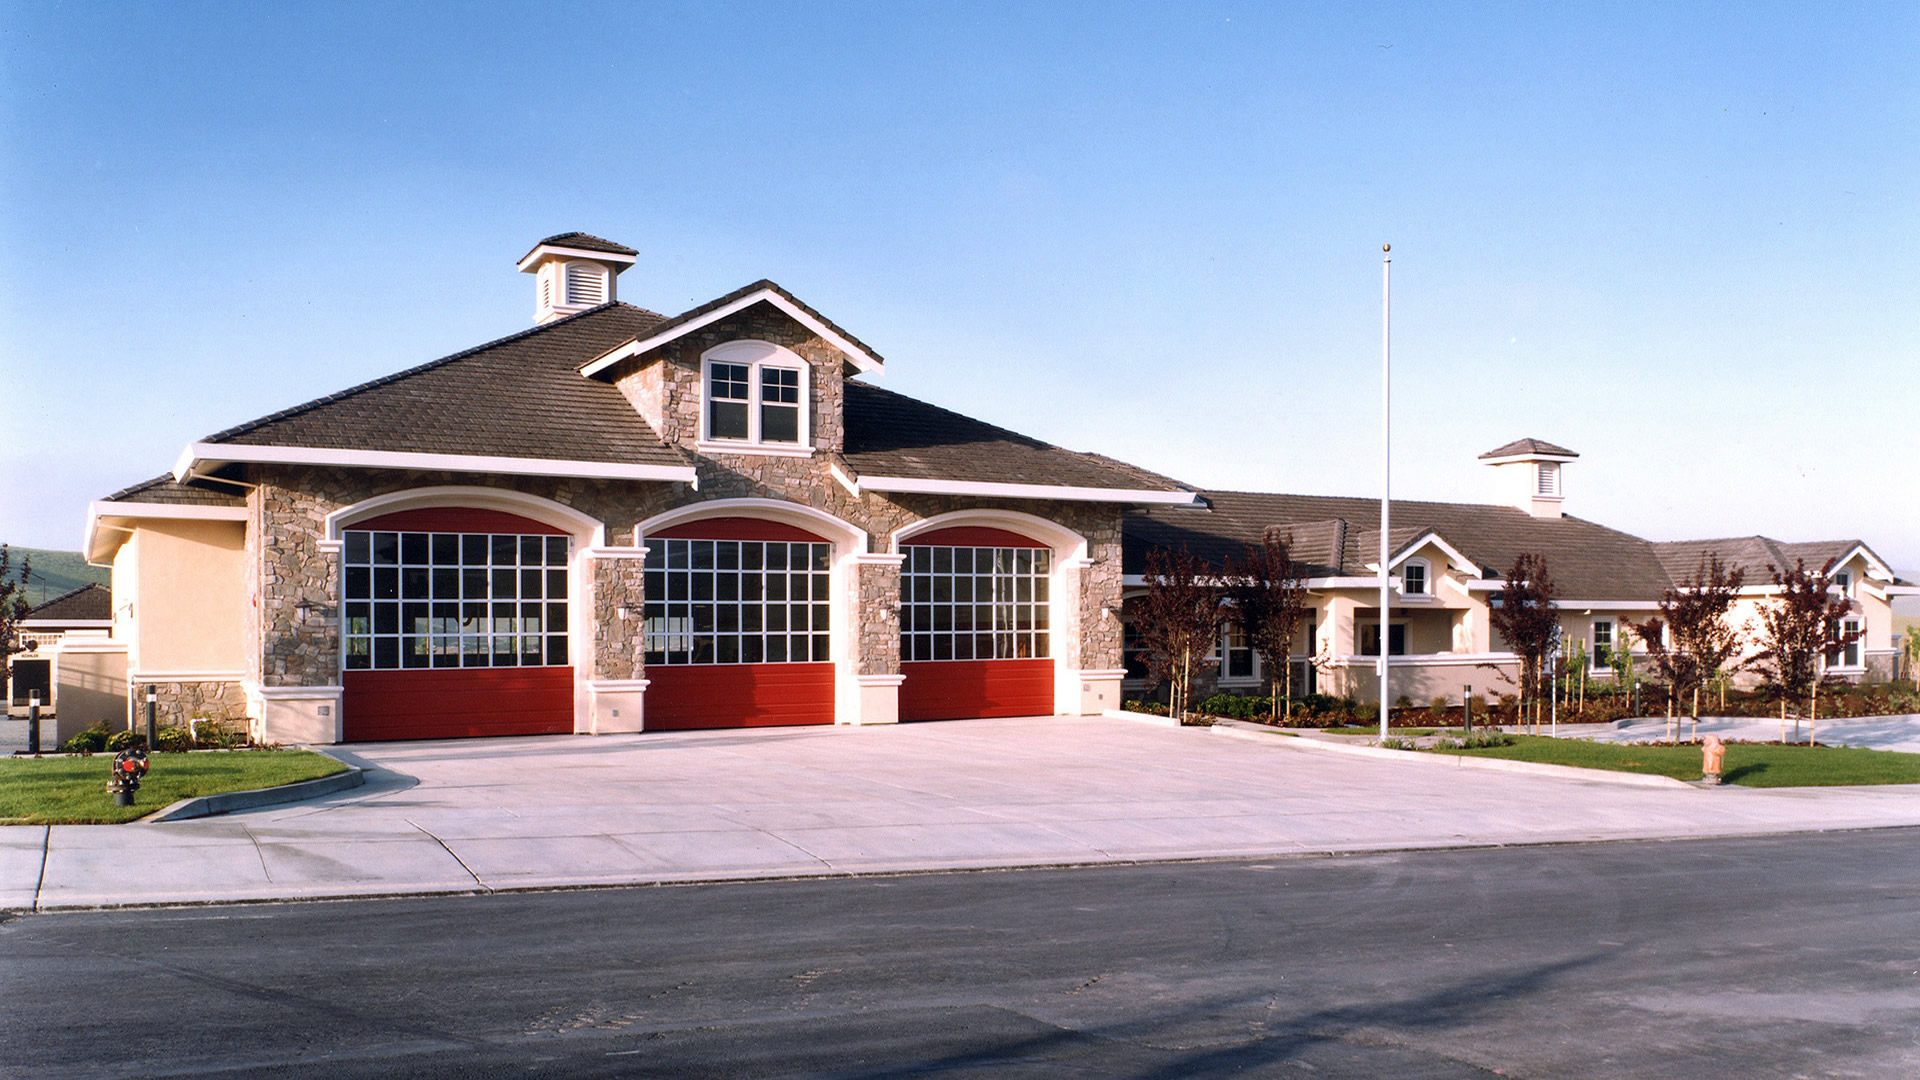 Fire Station 30 Lca Architects